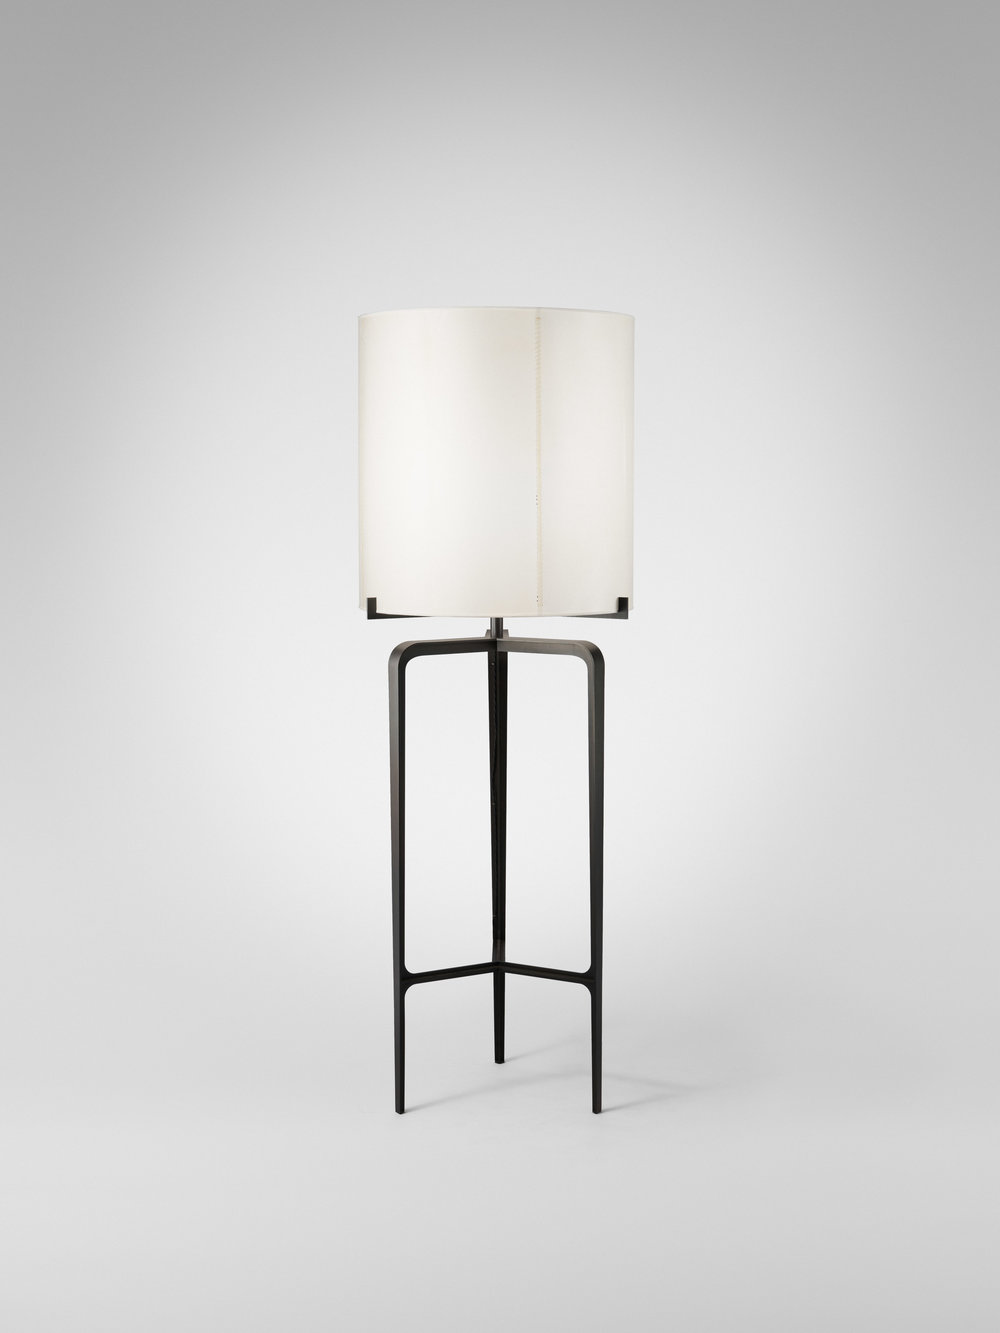 1. FS Standard Lamp 'Untitled'.jpg